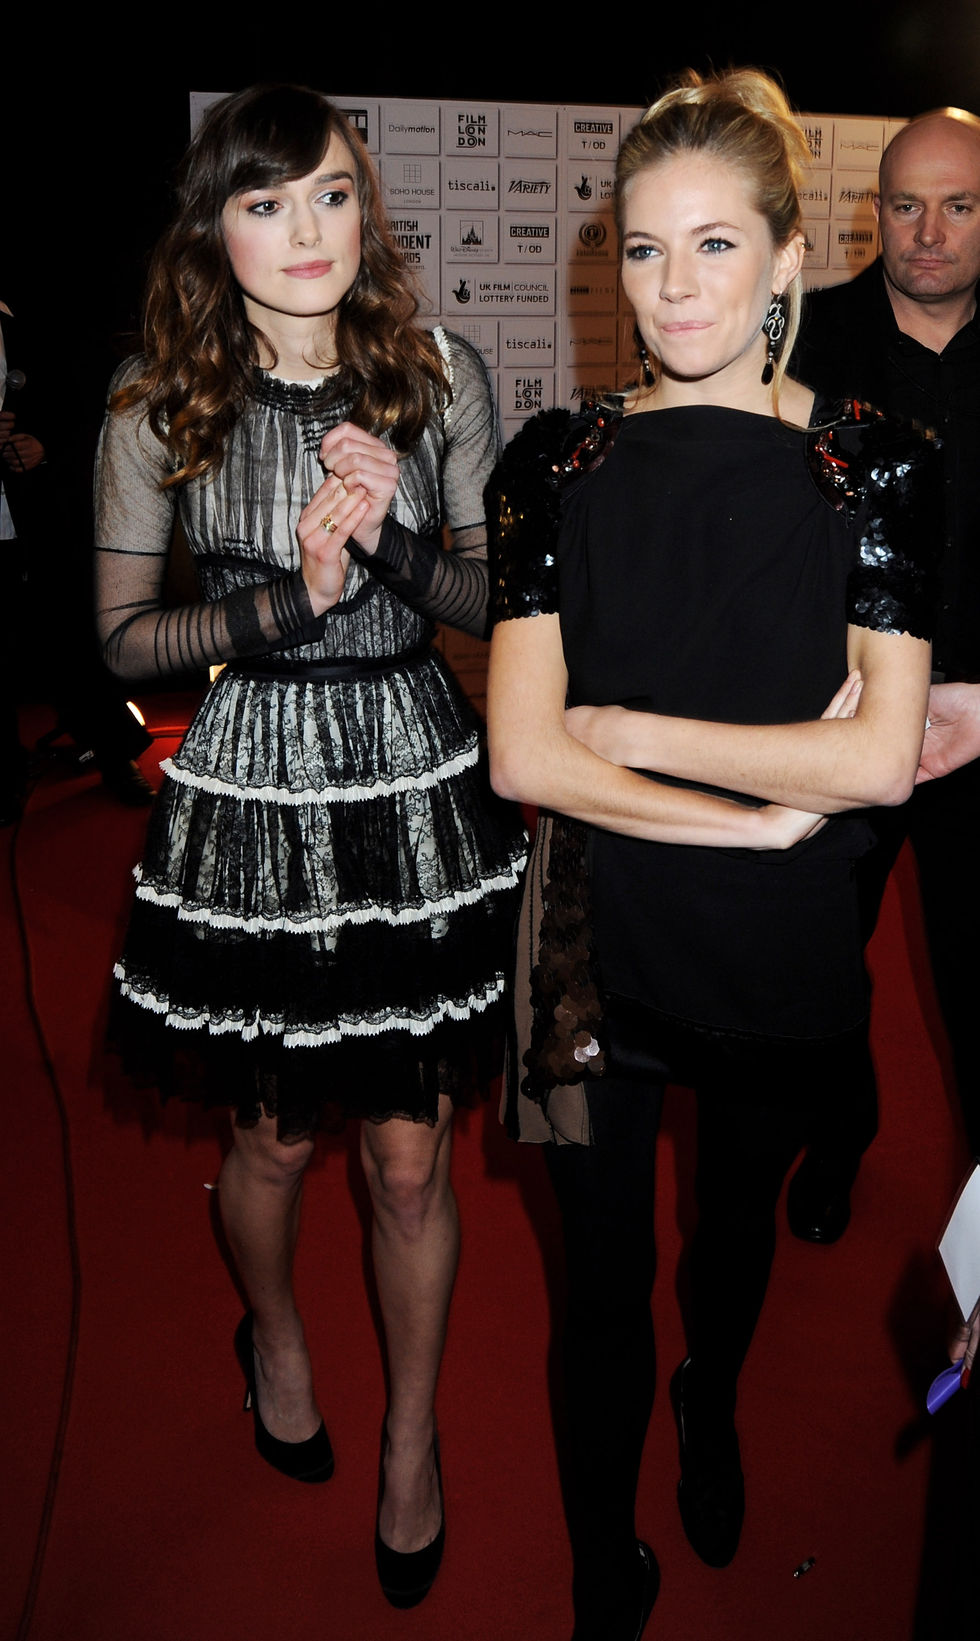 keira-knightley-and-sienna-miller-british-independent-film-awards-2008-in-london-01